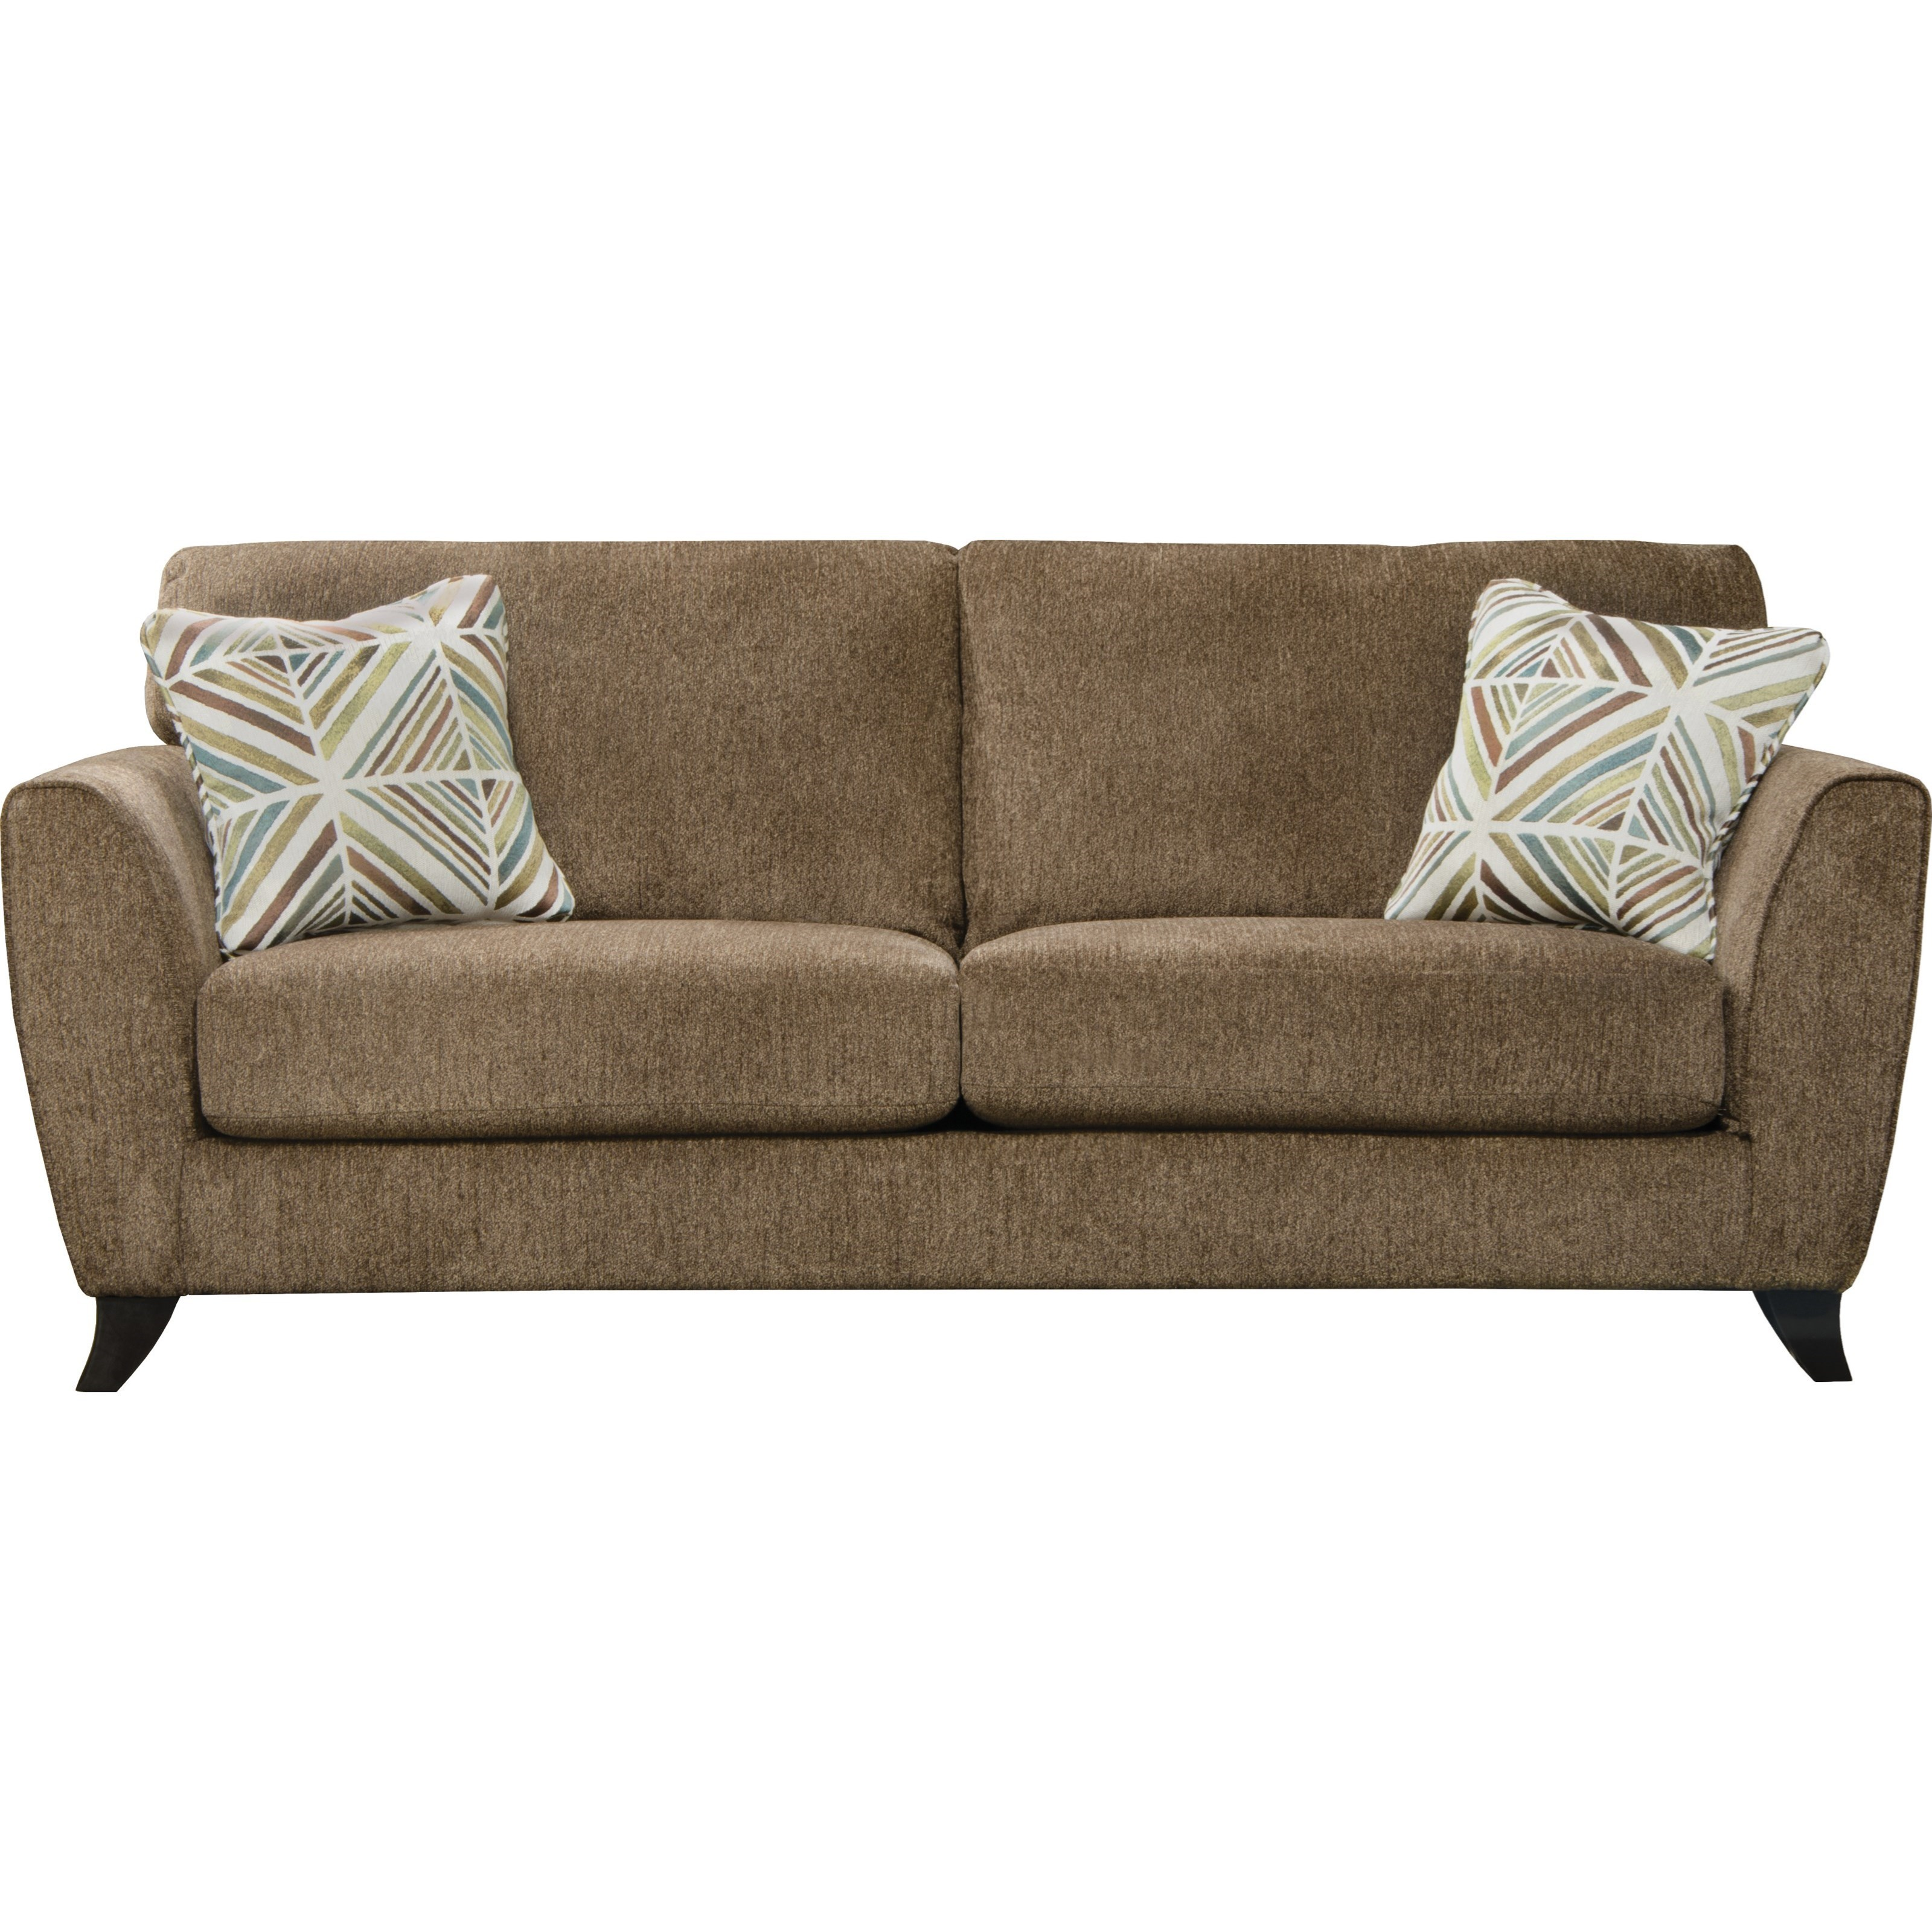 Alyssa Sofa by Jackson Furniture at Northeast Factory Direct